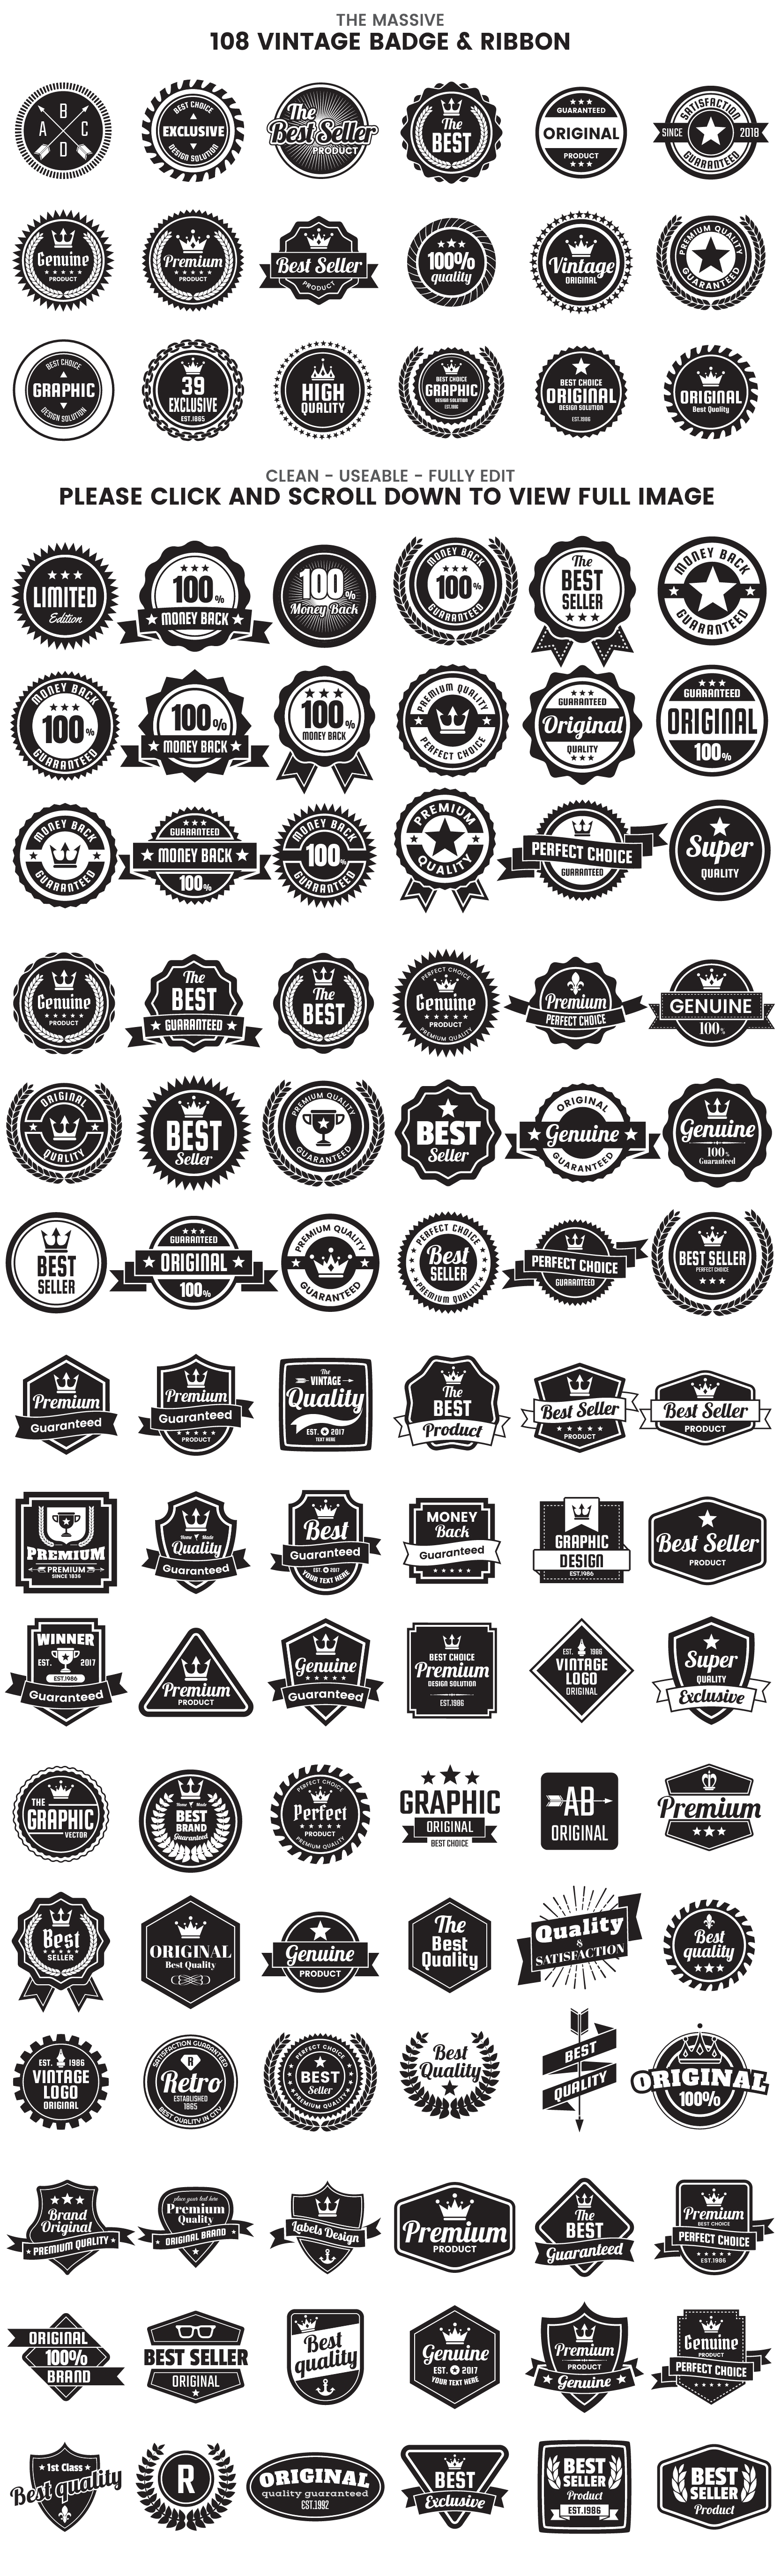 1046 VINTAGE BADGE & RIBBON example image 7